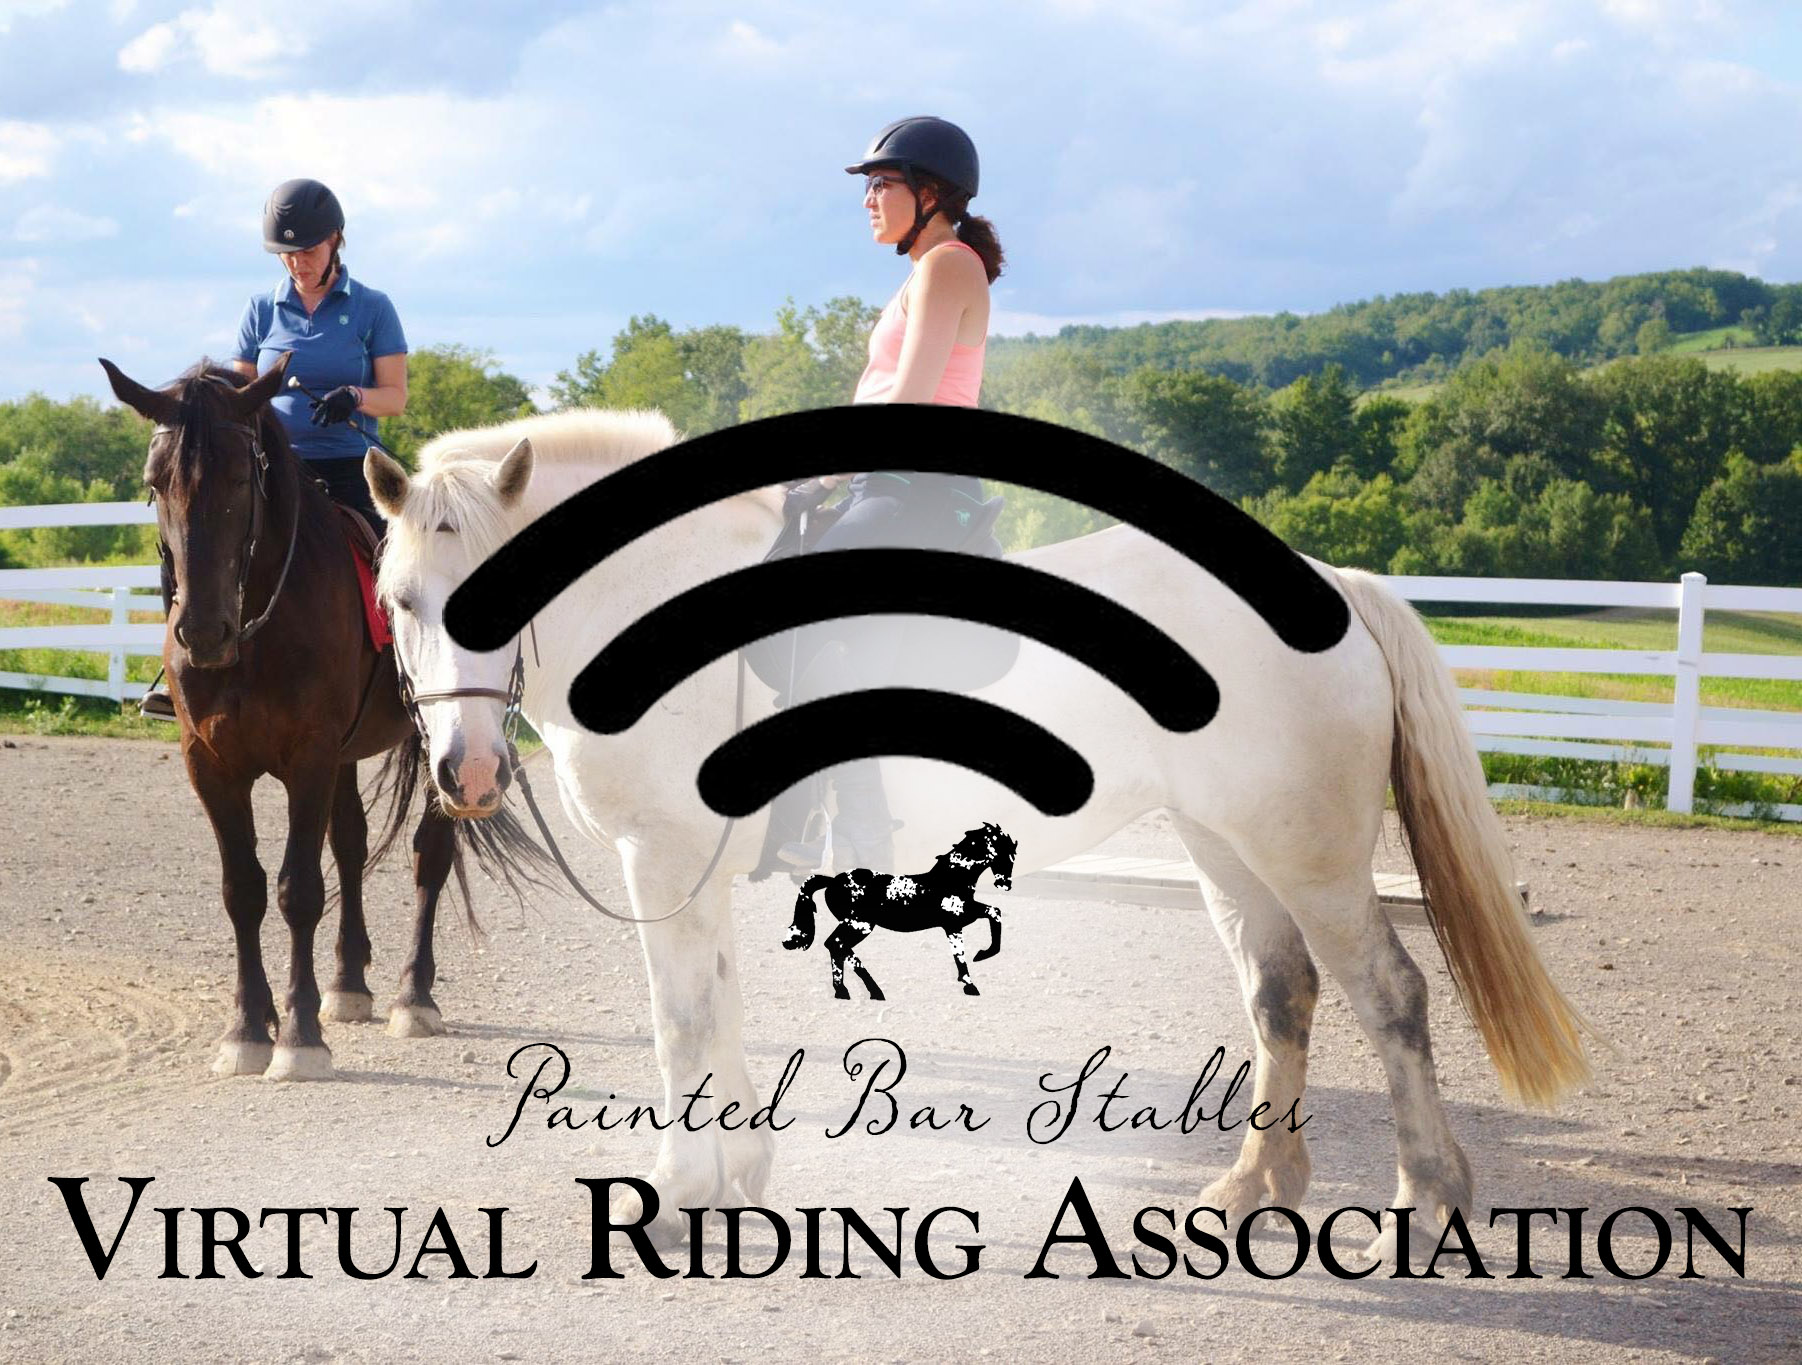 Virtual Riding Association at Painted Bar Stables